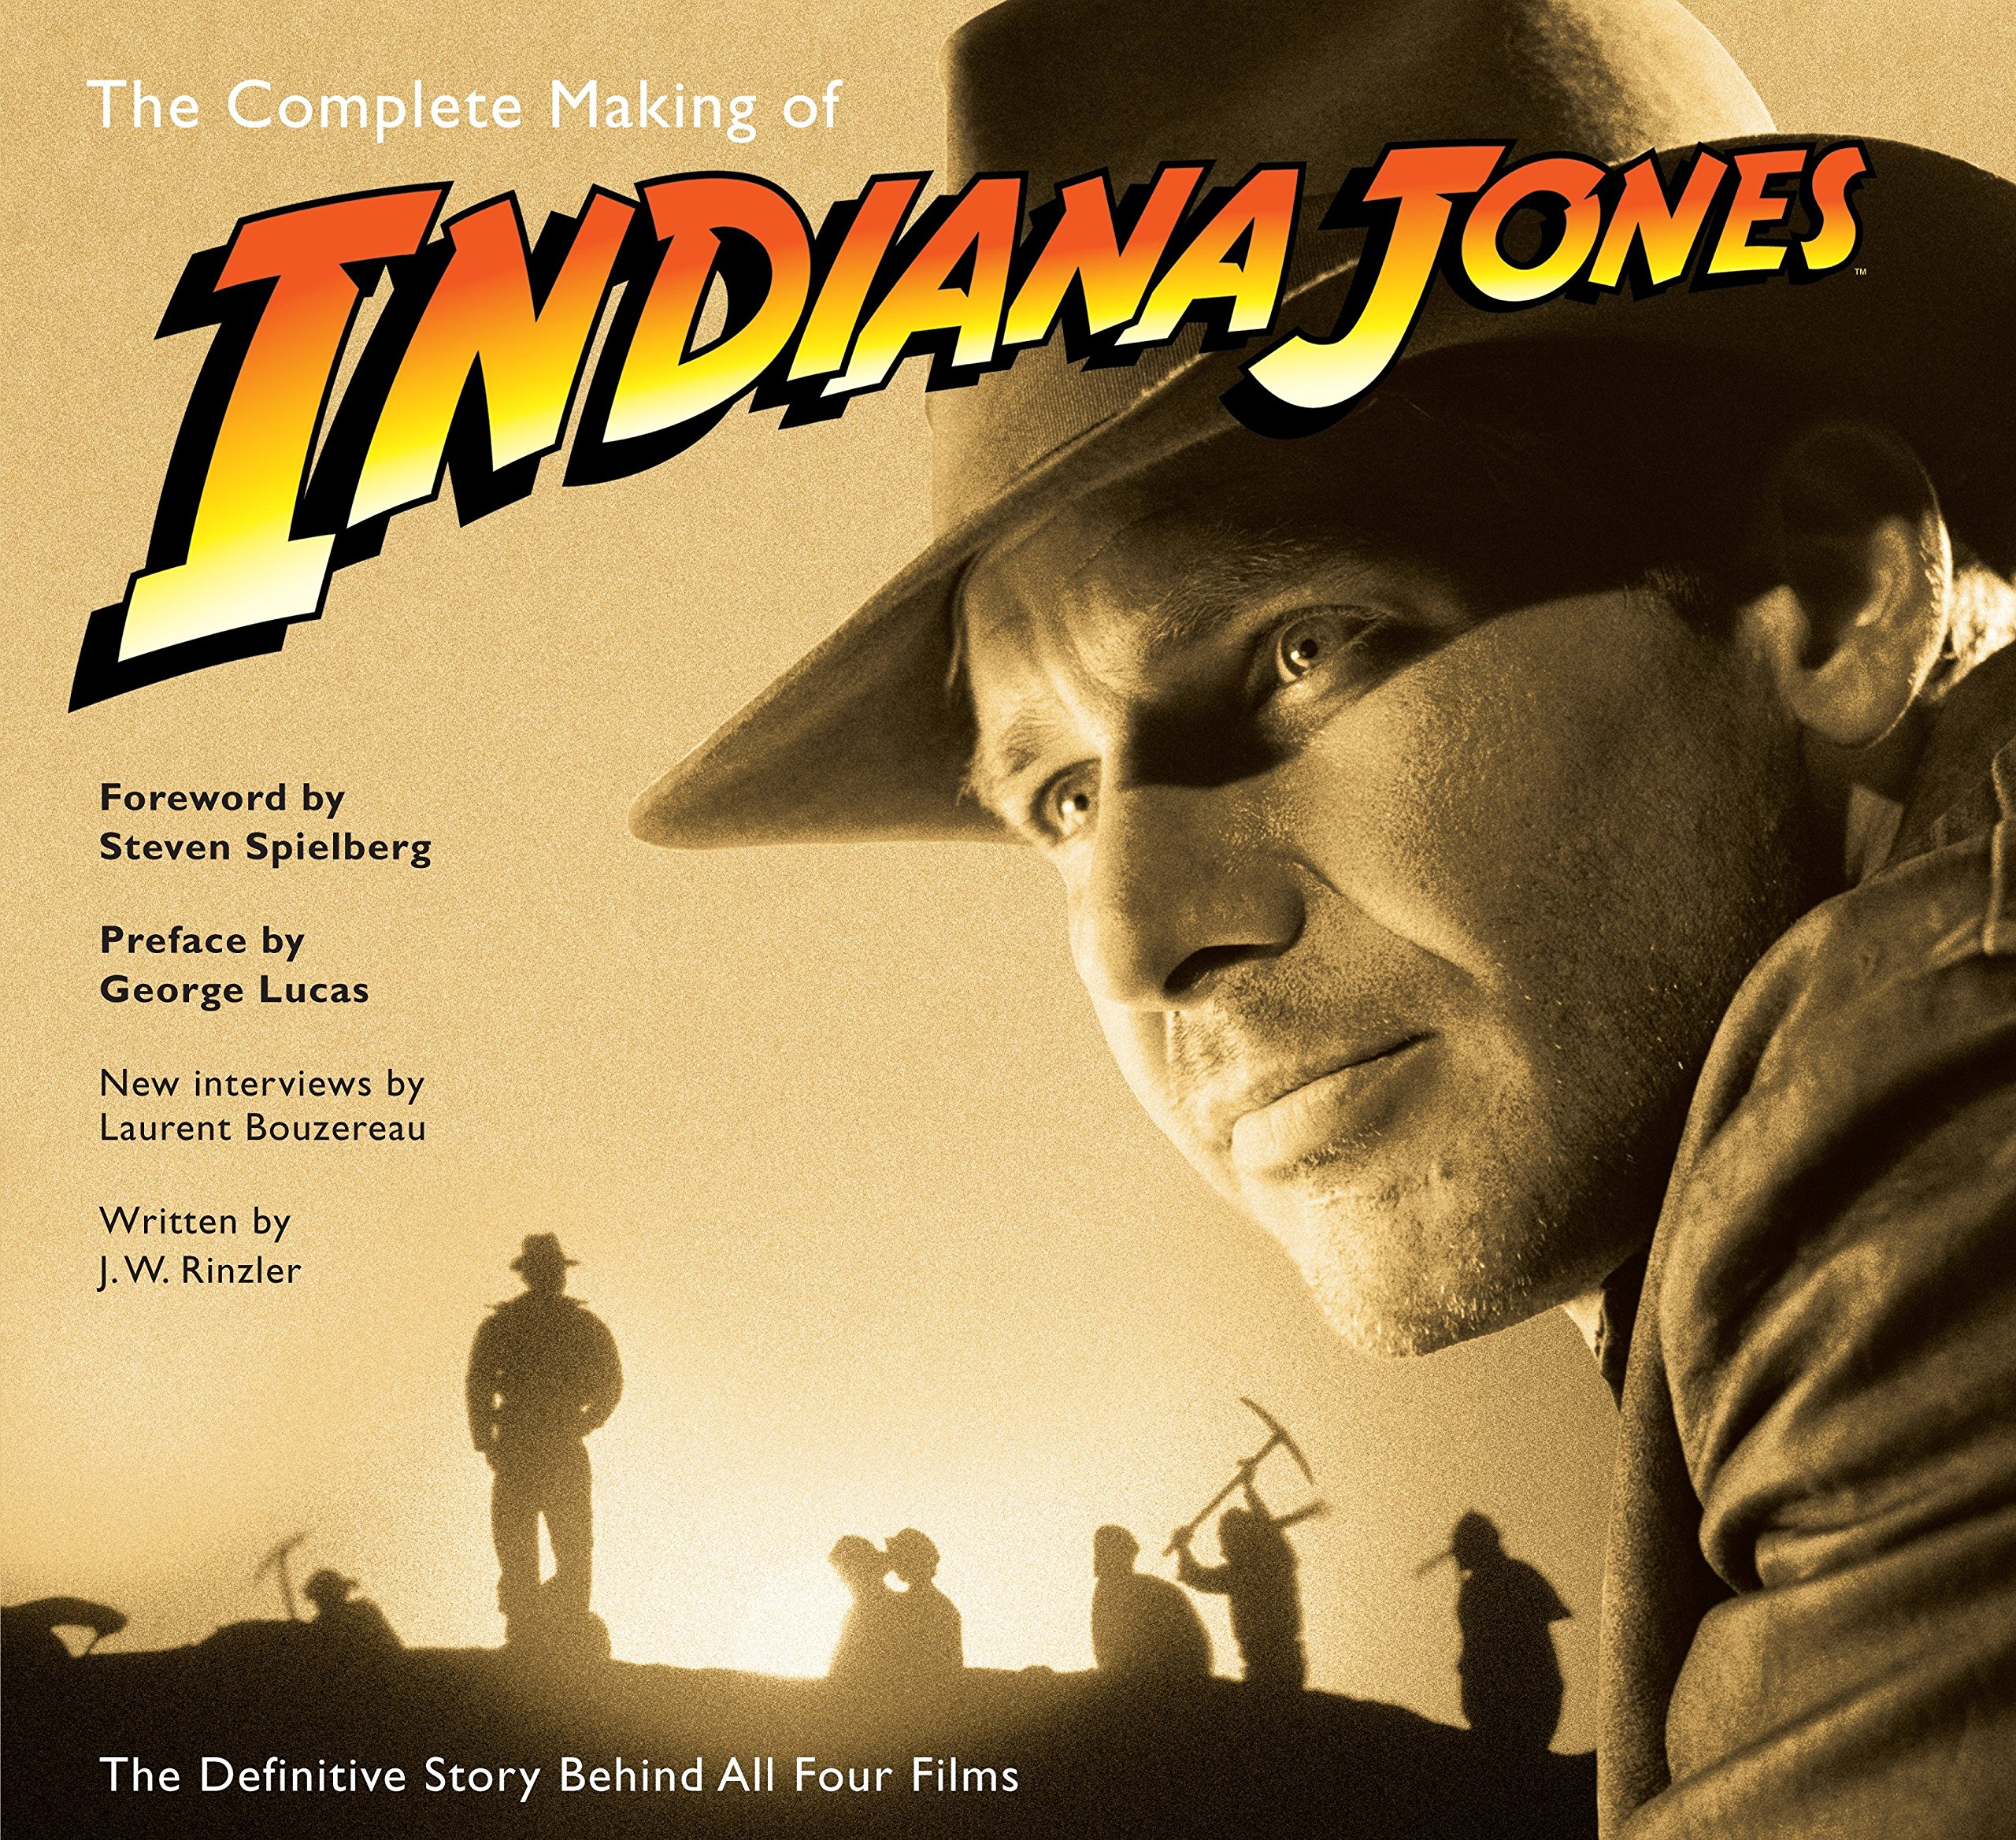 The Complete Making of Indiana Jones: The Definitive Story Behind All Four Films by Del Rey Books